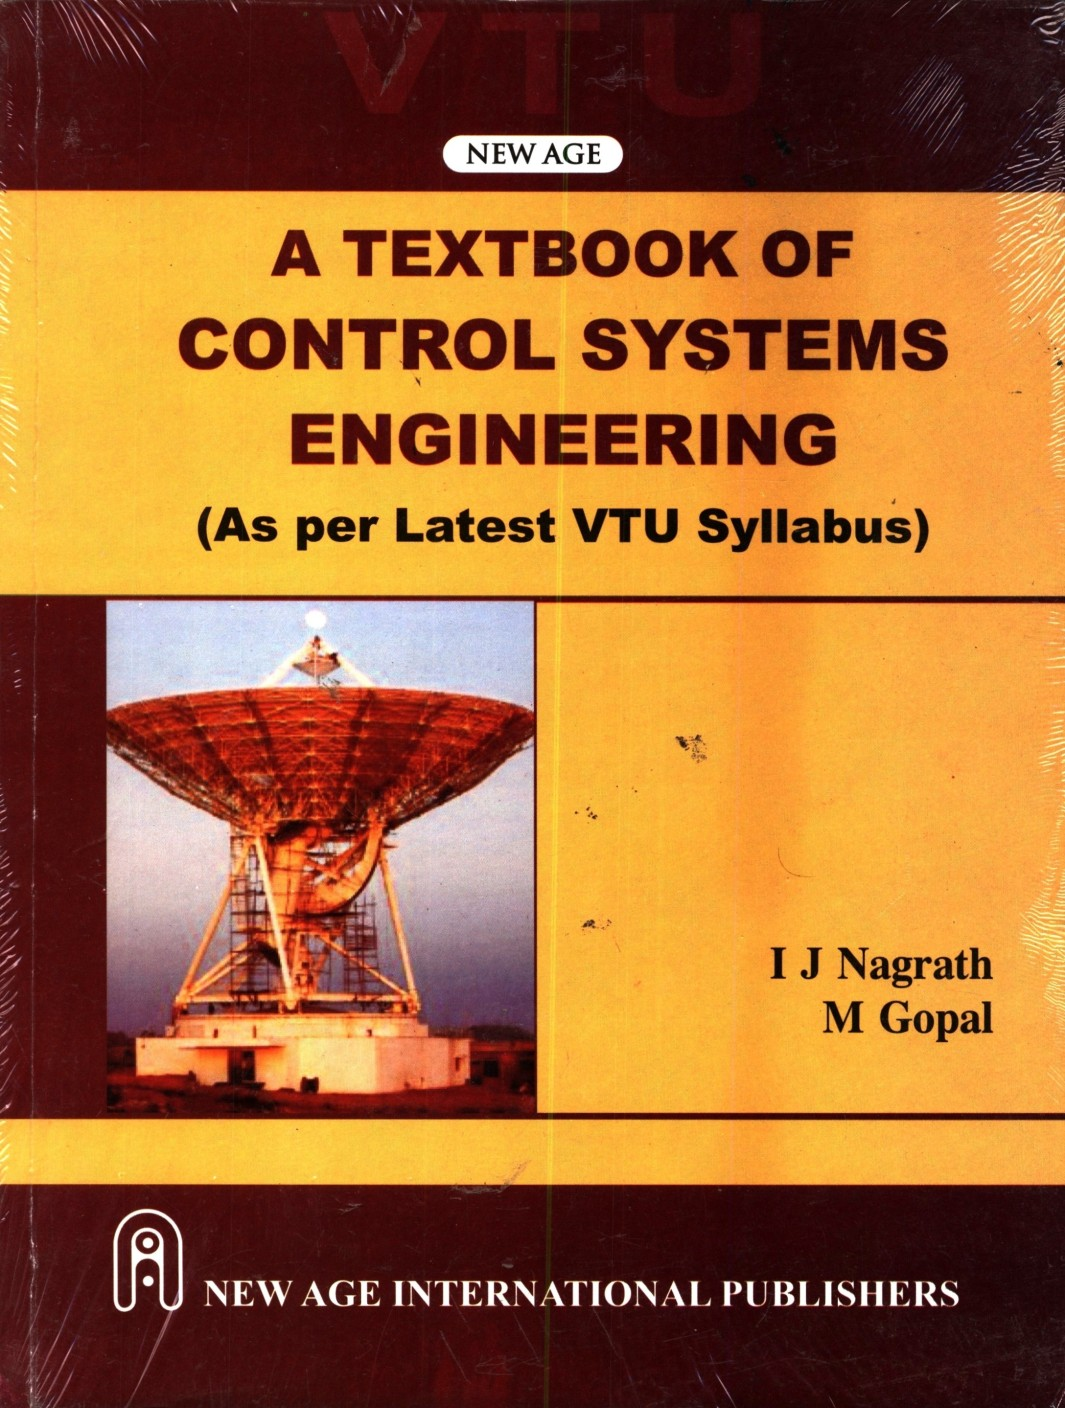 syllabus of vtu chem engg Vtu be time table 2017, btech 1st, 3rd, 5th, 7th semester exam schedule, candidates can check vtu be date sheet 2017 online semester wise.